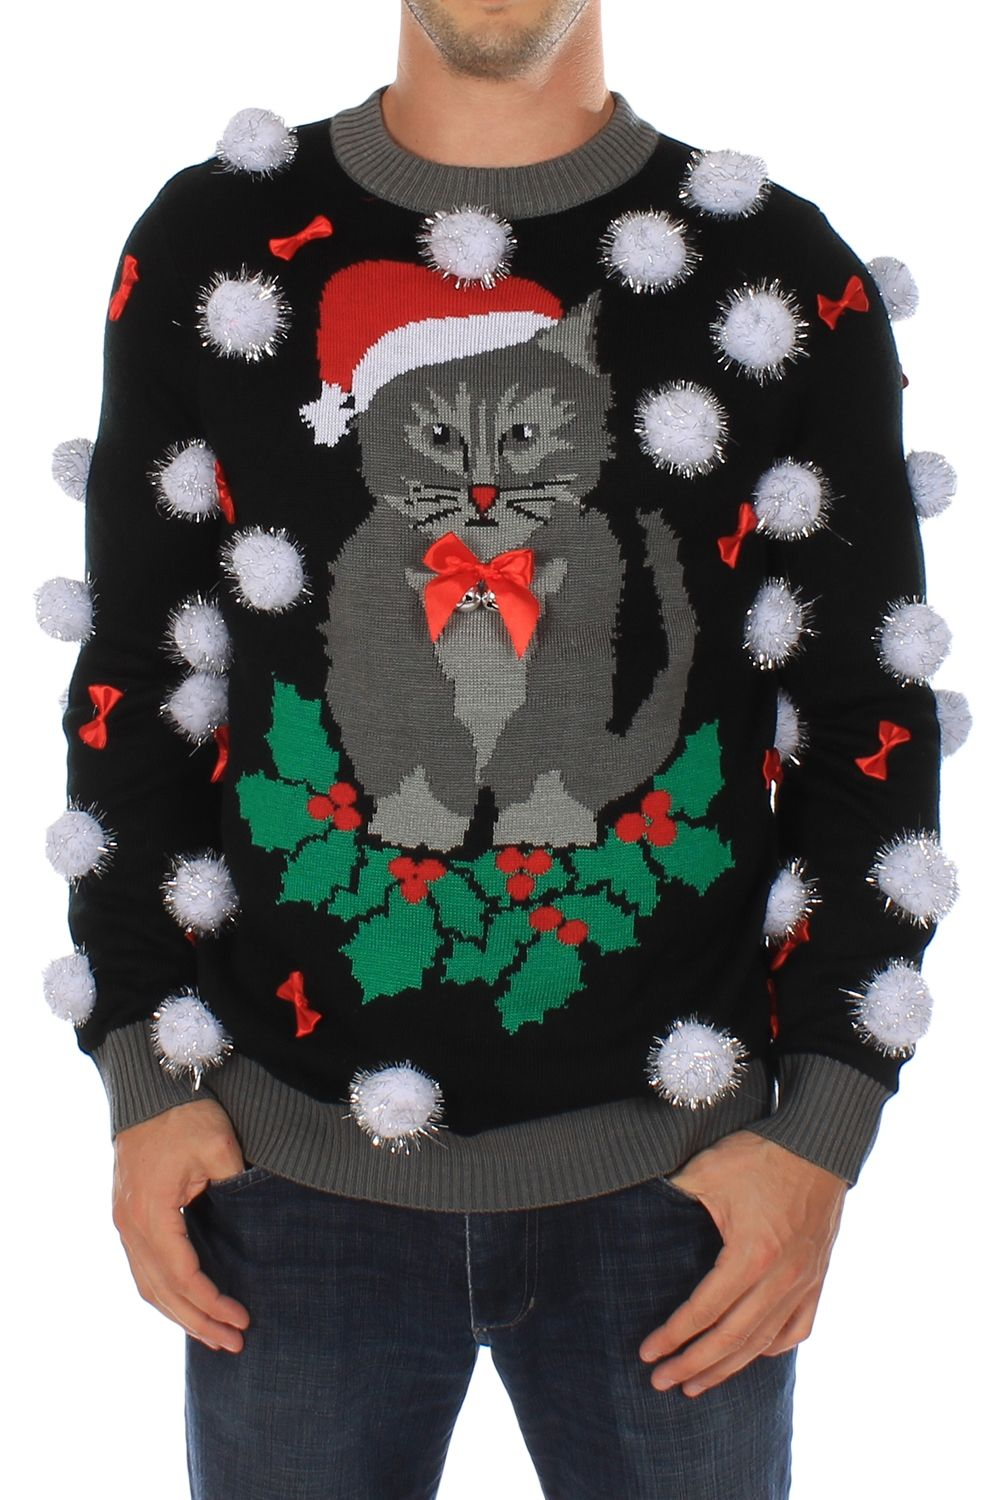 Men's Ugly Cat Sweater with Bells | Wreaths, Ugliest christmas ...